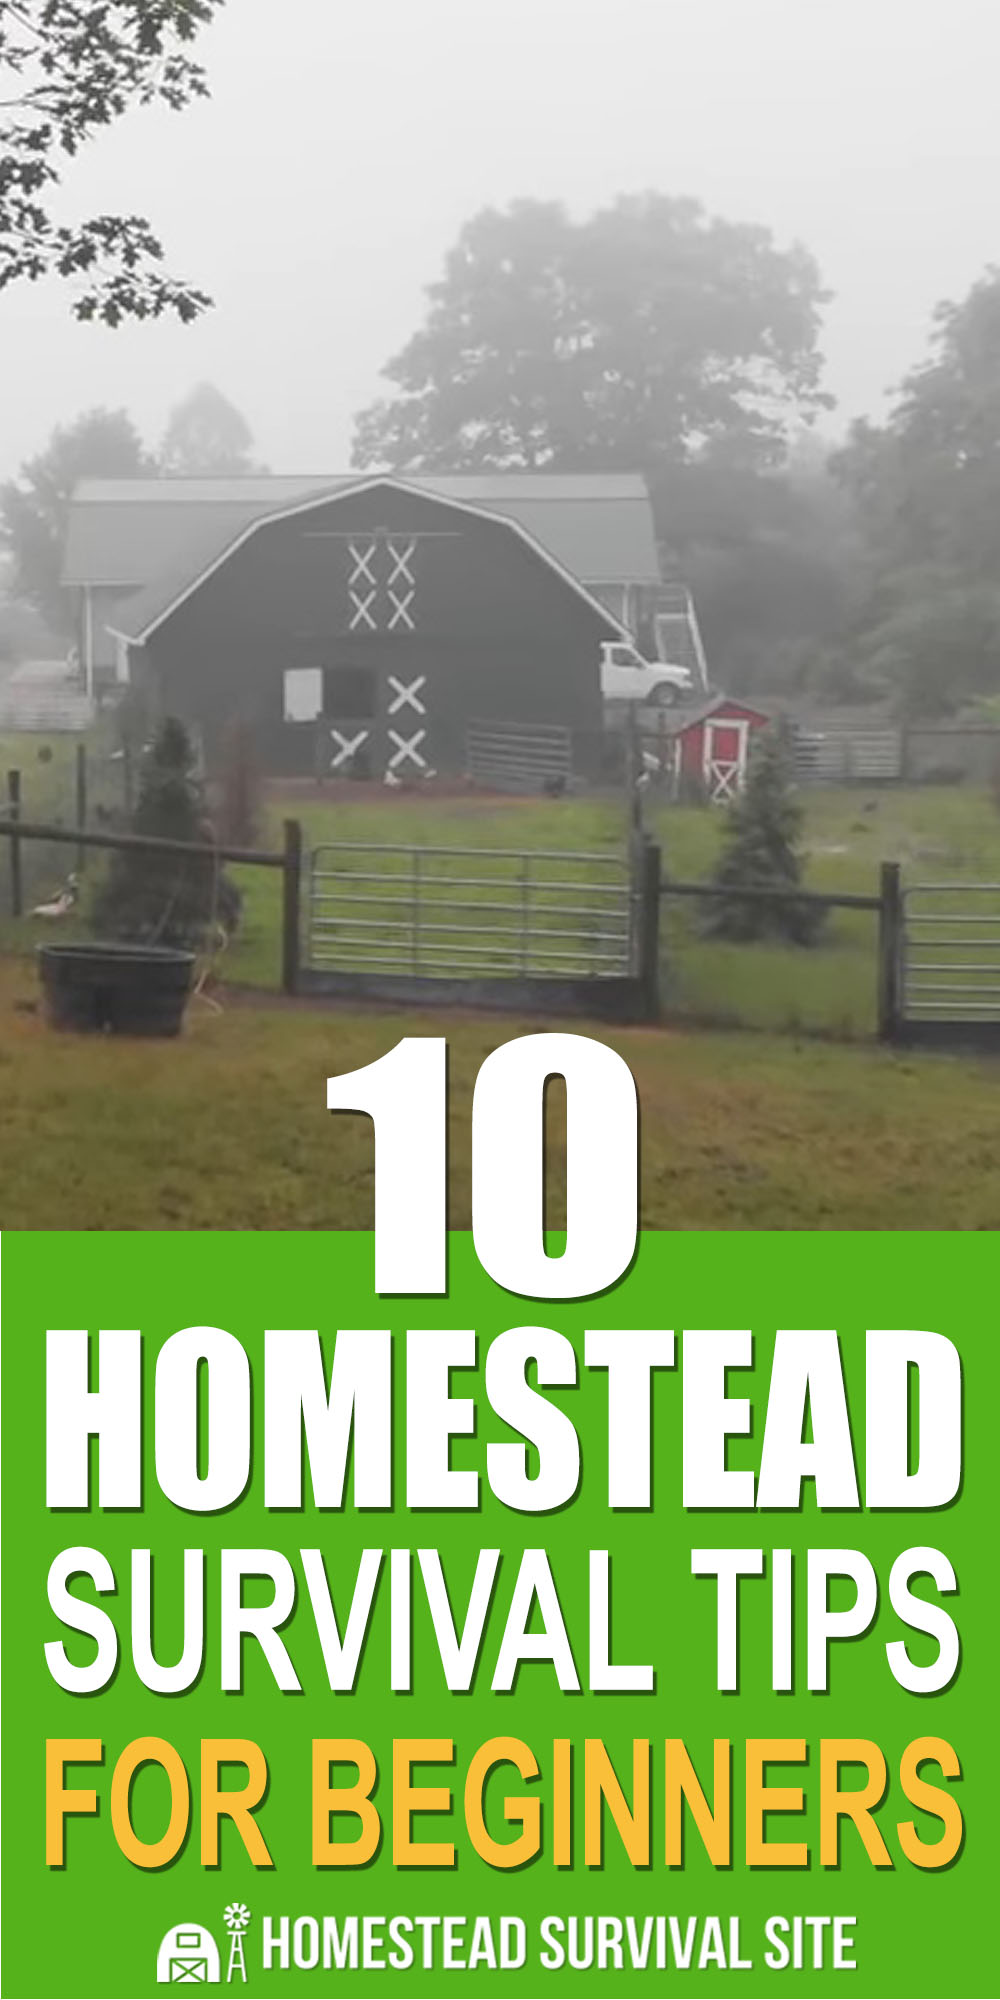 10 Homestead Survival Tips For Beginners